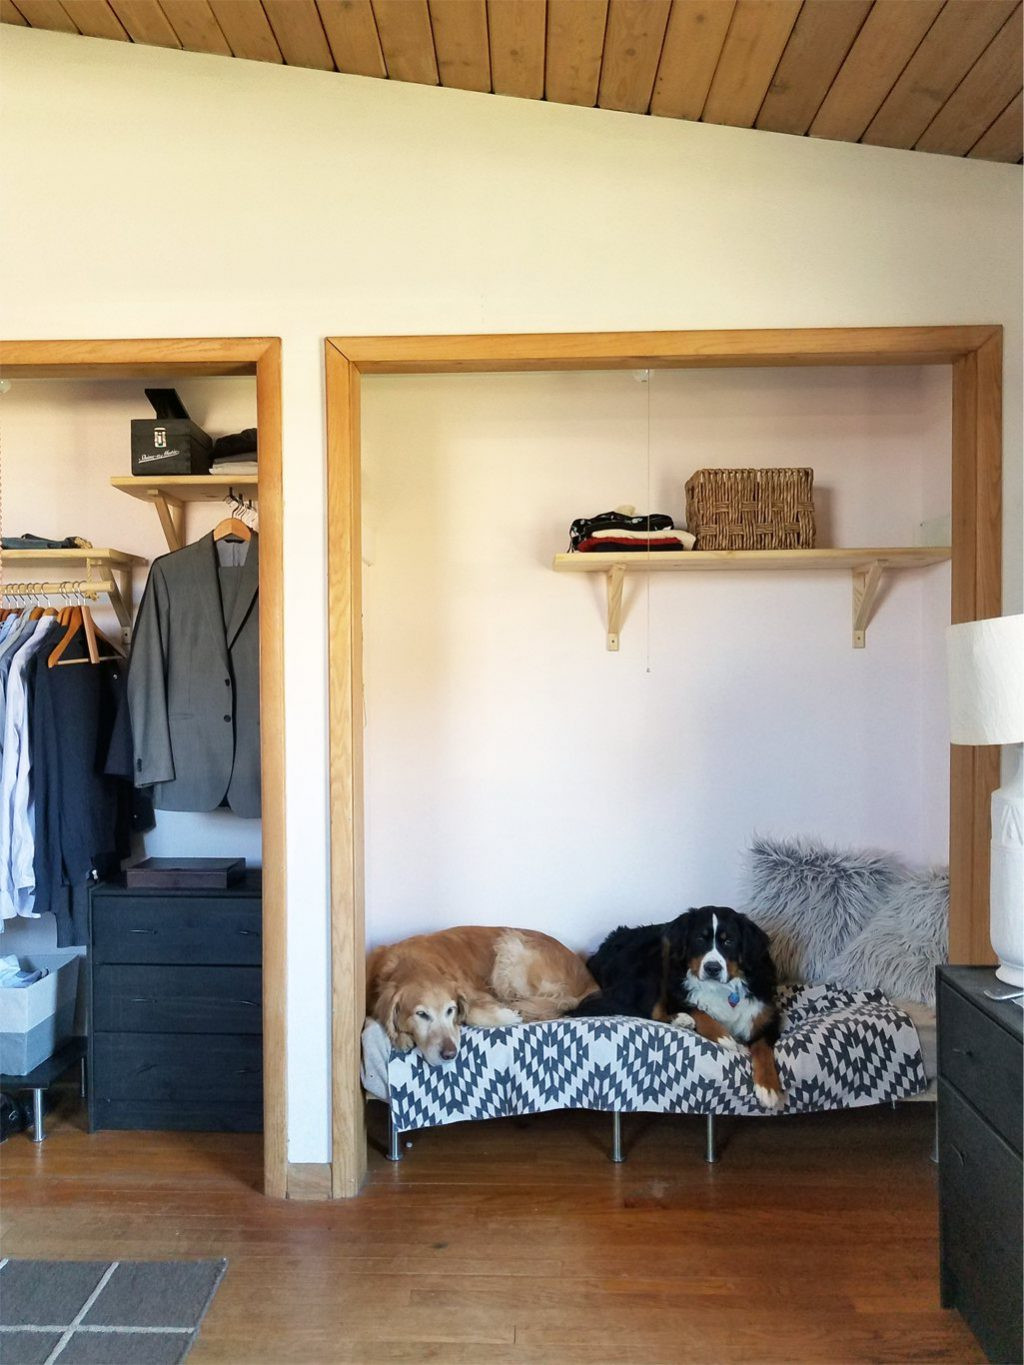 Best ideas about Raised Dog Beds DIY . Save or Pin DIY raised dog bed from MDF and inexpensive legs from IKEA Now.